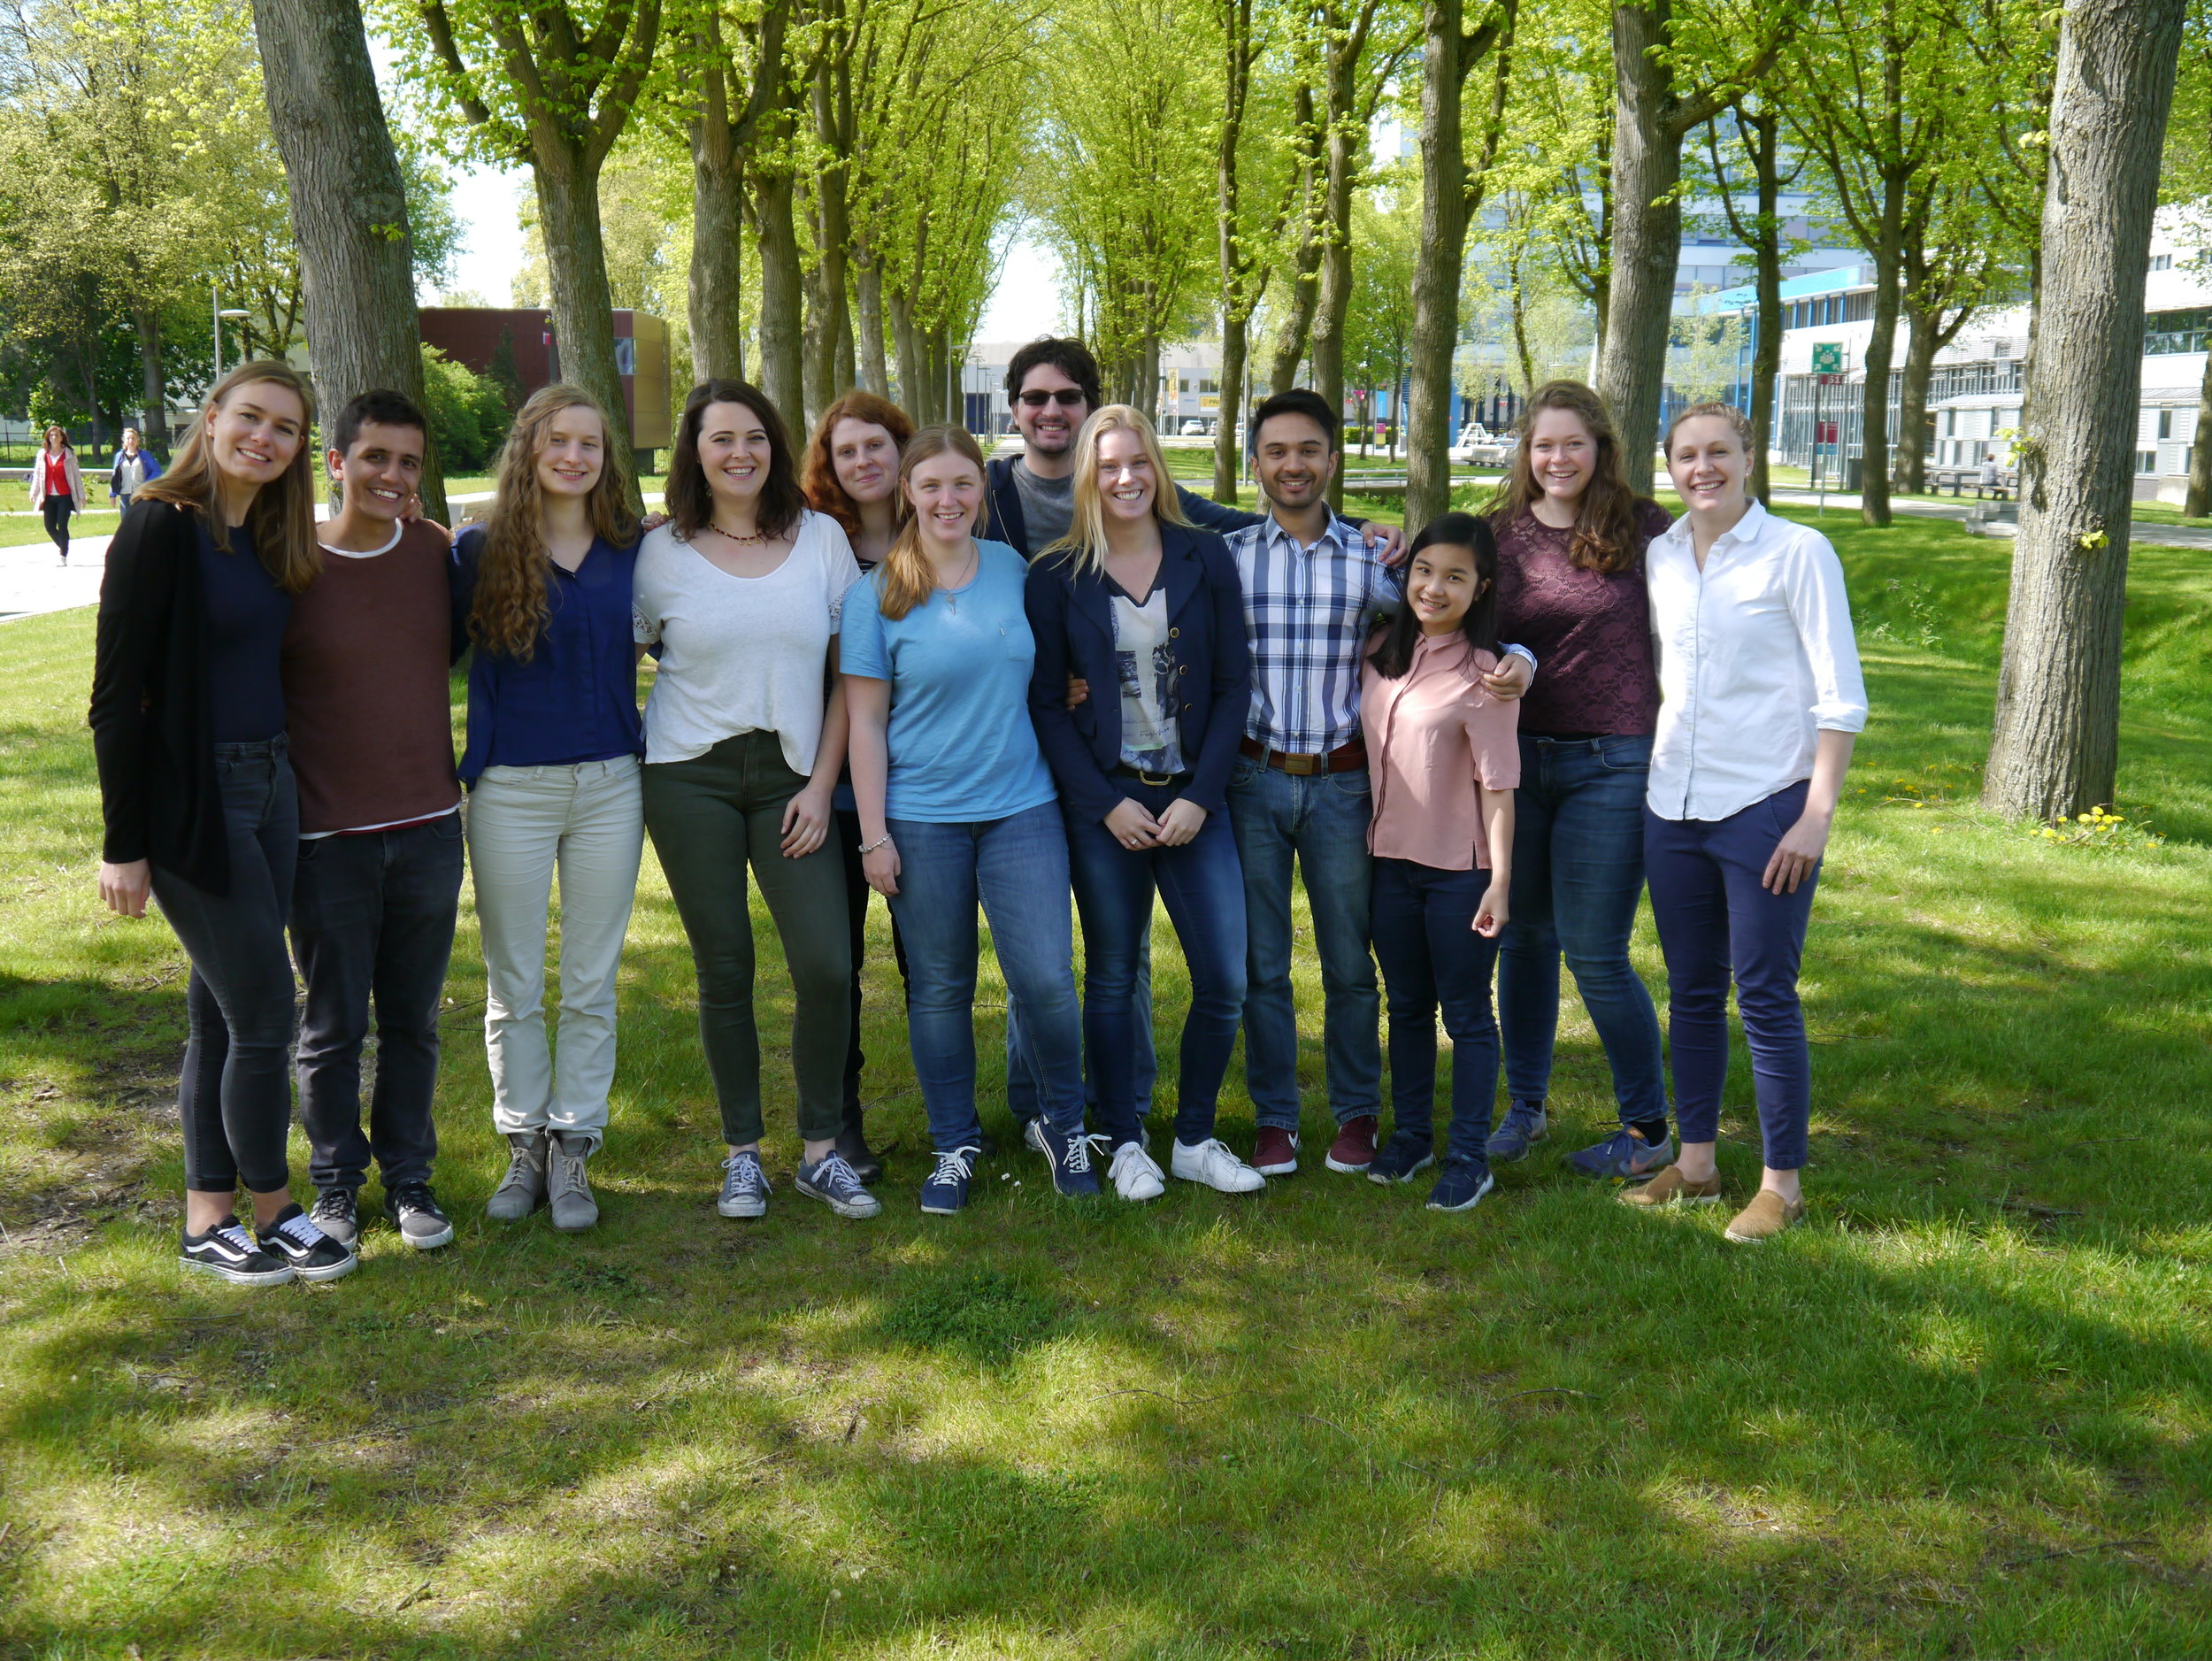 Left to right:  Lisbeth Schmidtchen; Timmy Paez; Gemma van der Voort; Lisa Büller; Jard Mattens; Janine Nijenhuis; Alex Armstrong; Nicole Bennis; Kavish Kohabir; Venda Mangkusaputra; Susan Bouwmeester; Monique de Leeuw